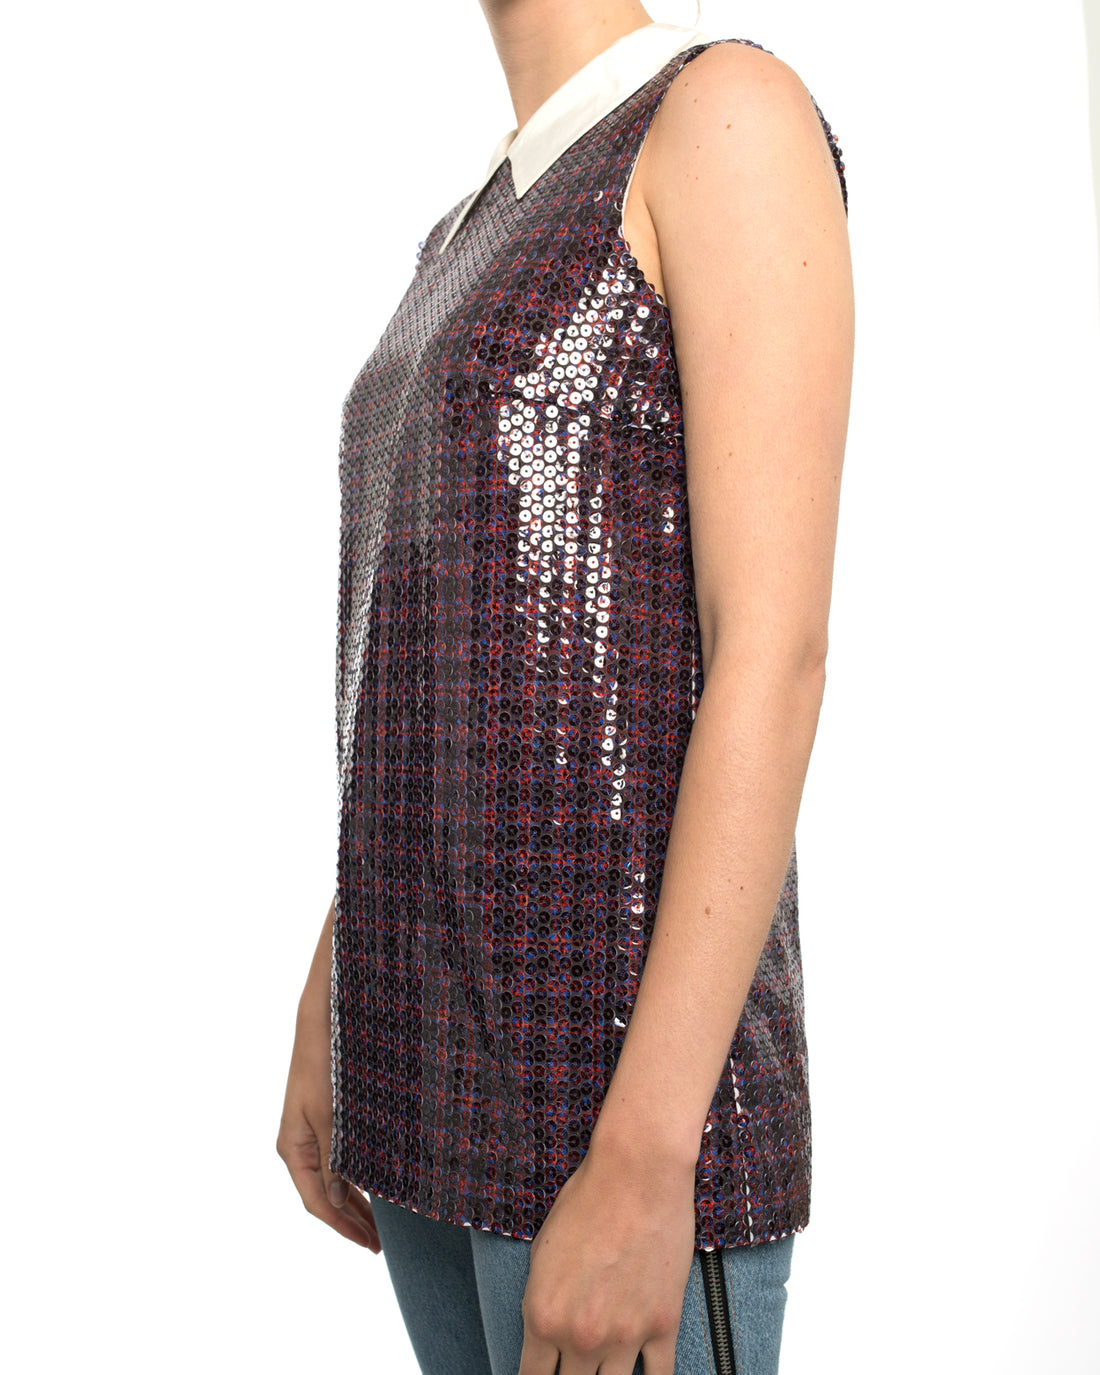 Prada Blue and Red Check Sequin Sleeveless Top with Pointed Collar - 6